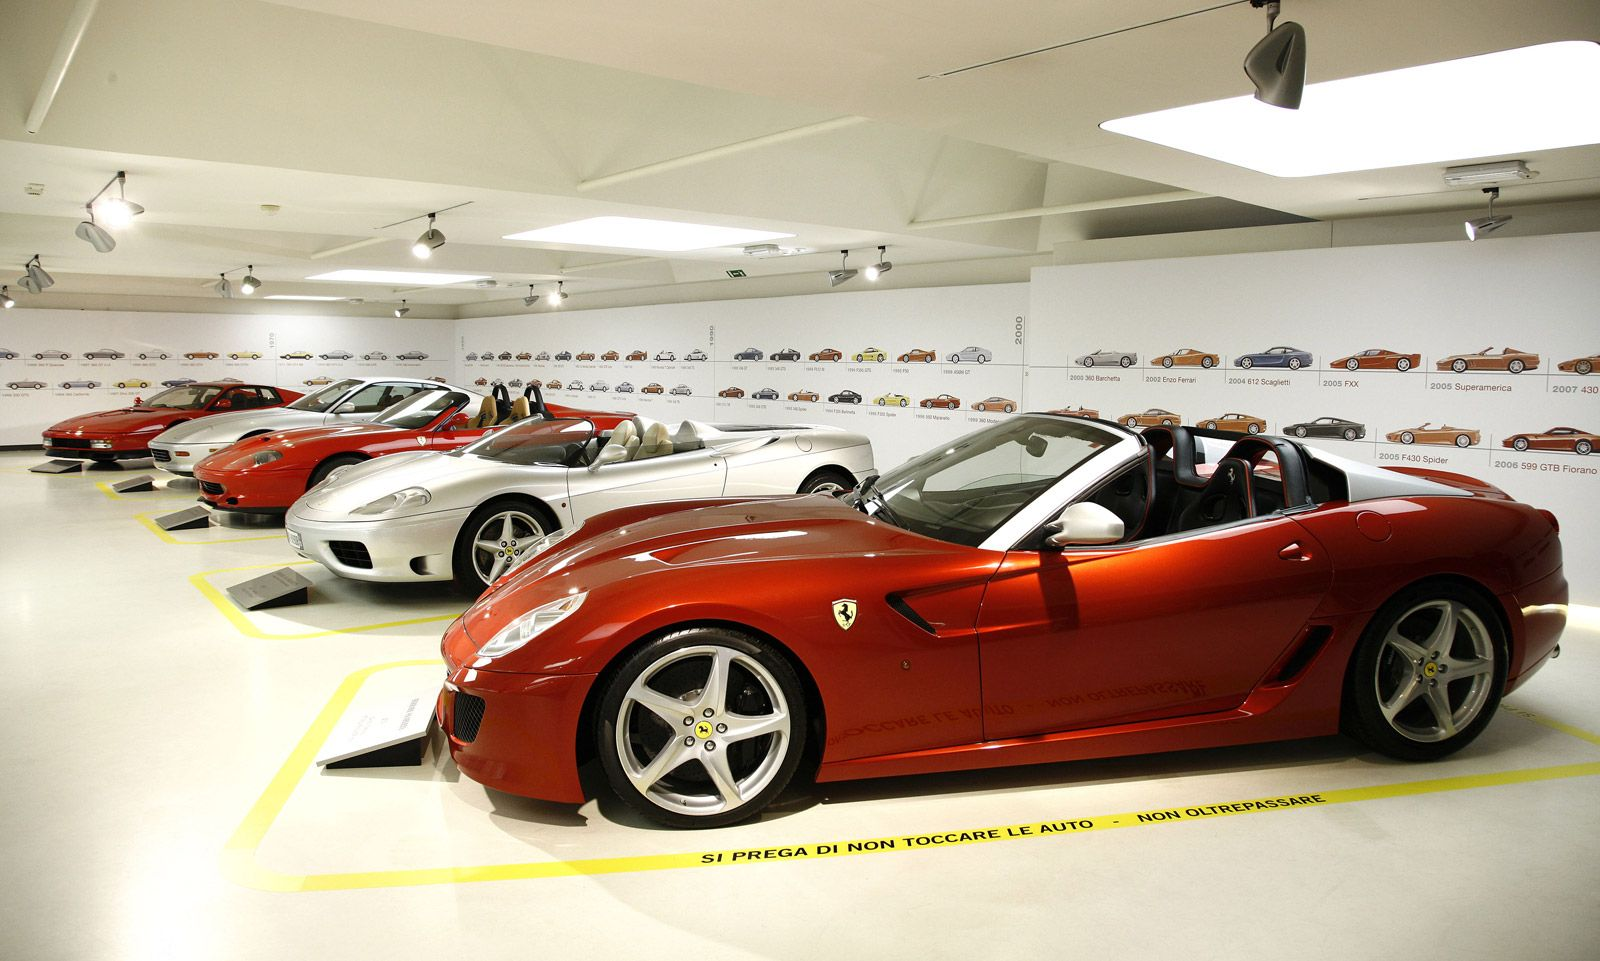 This past weekend one of the greatest collections of Ferraris, including both concept cars and production models, went on show at the official Ferrari Museum in Maranello, Italy. The cars are being shown in the Greatest Ferraris Of Sergio Pininfarina exhibition, which honors the legendary designer...